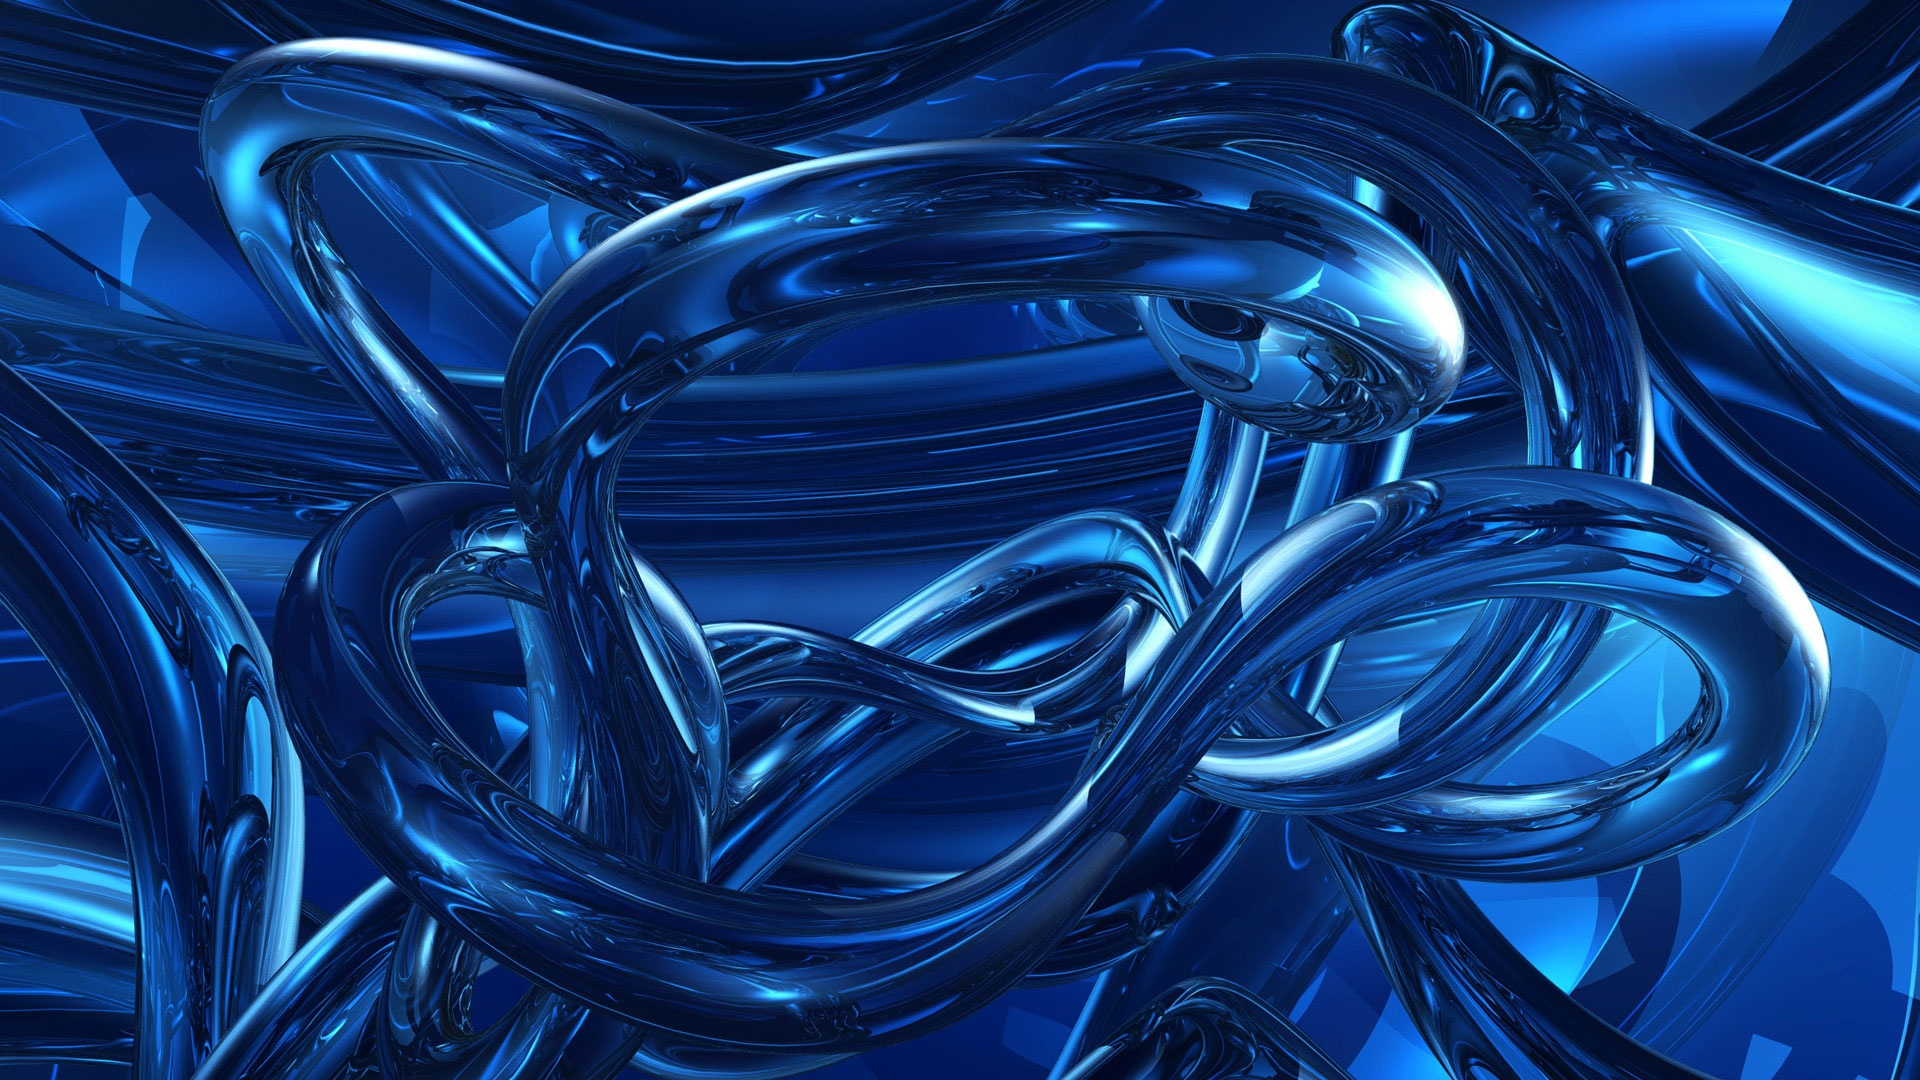 dark blue abstracts wallpapers in jpg format for free download